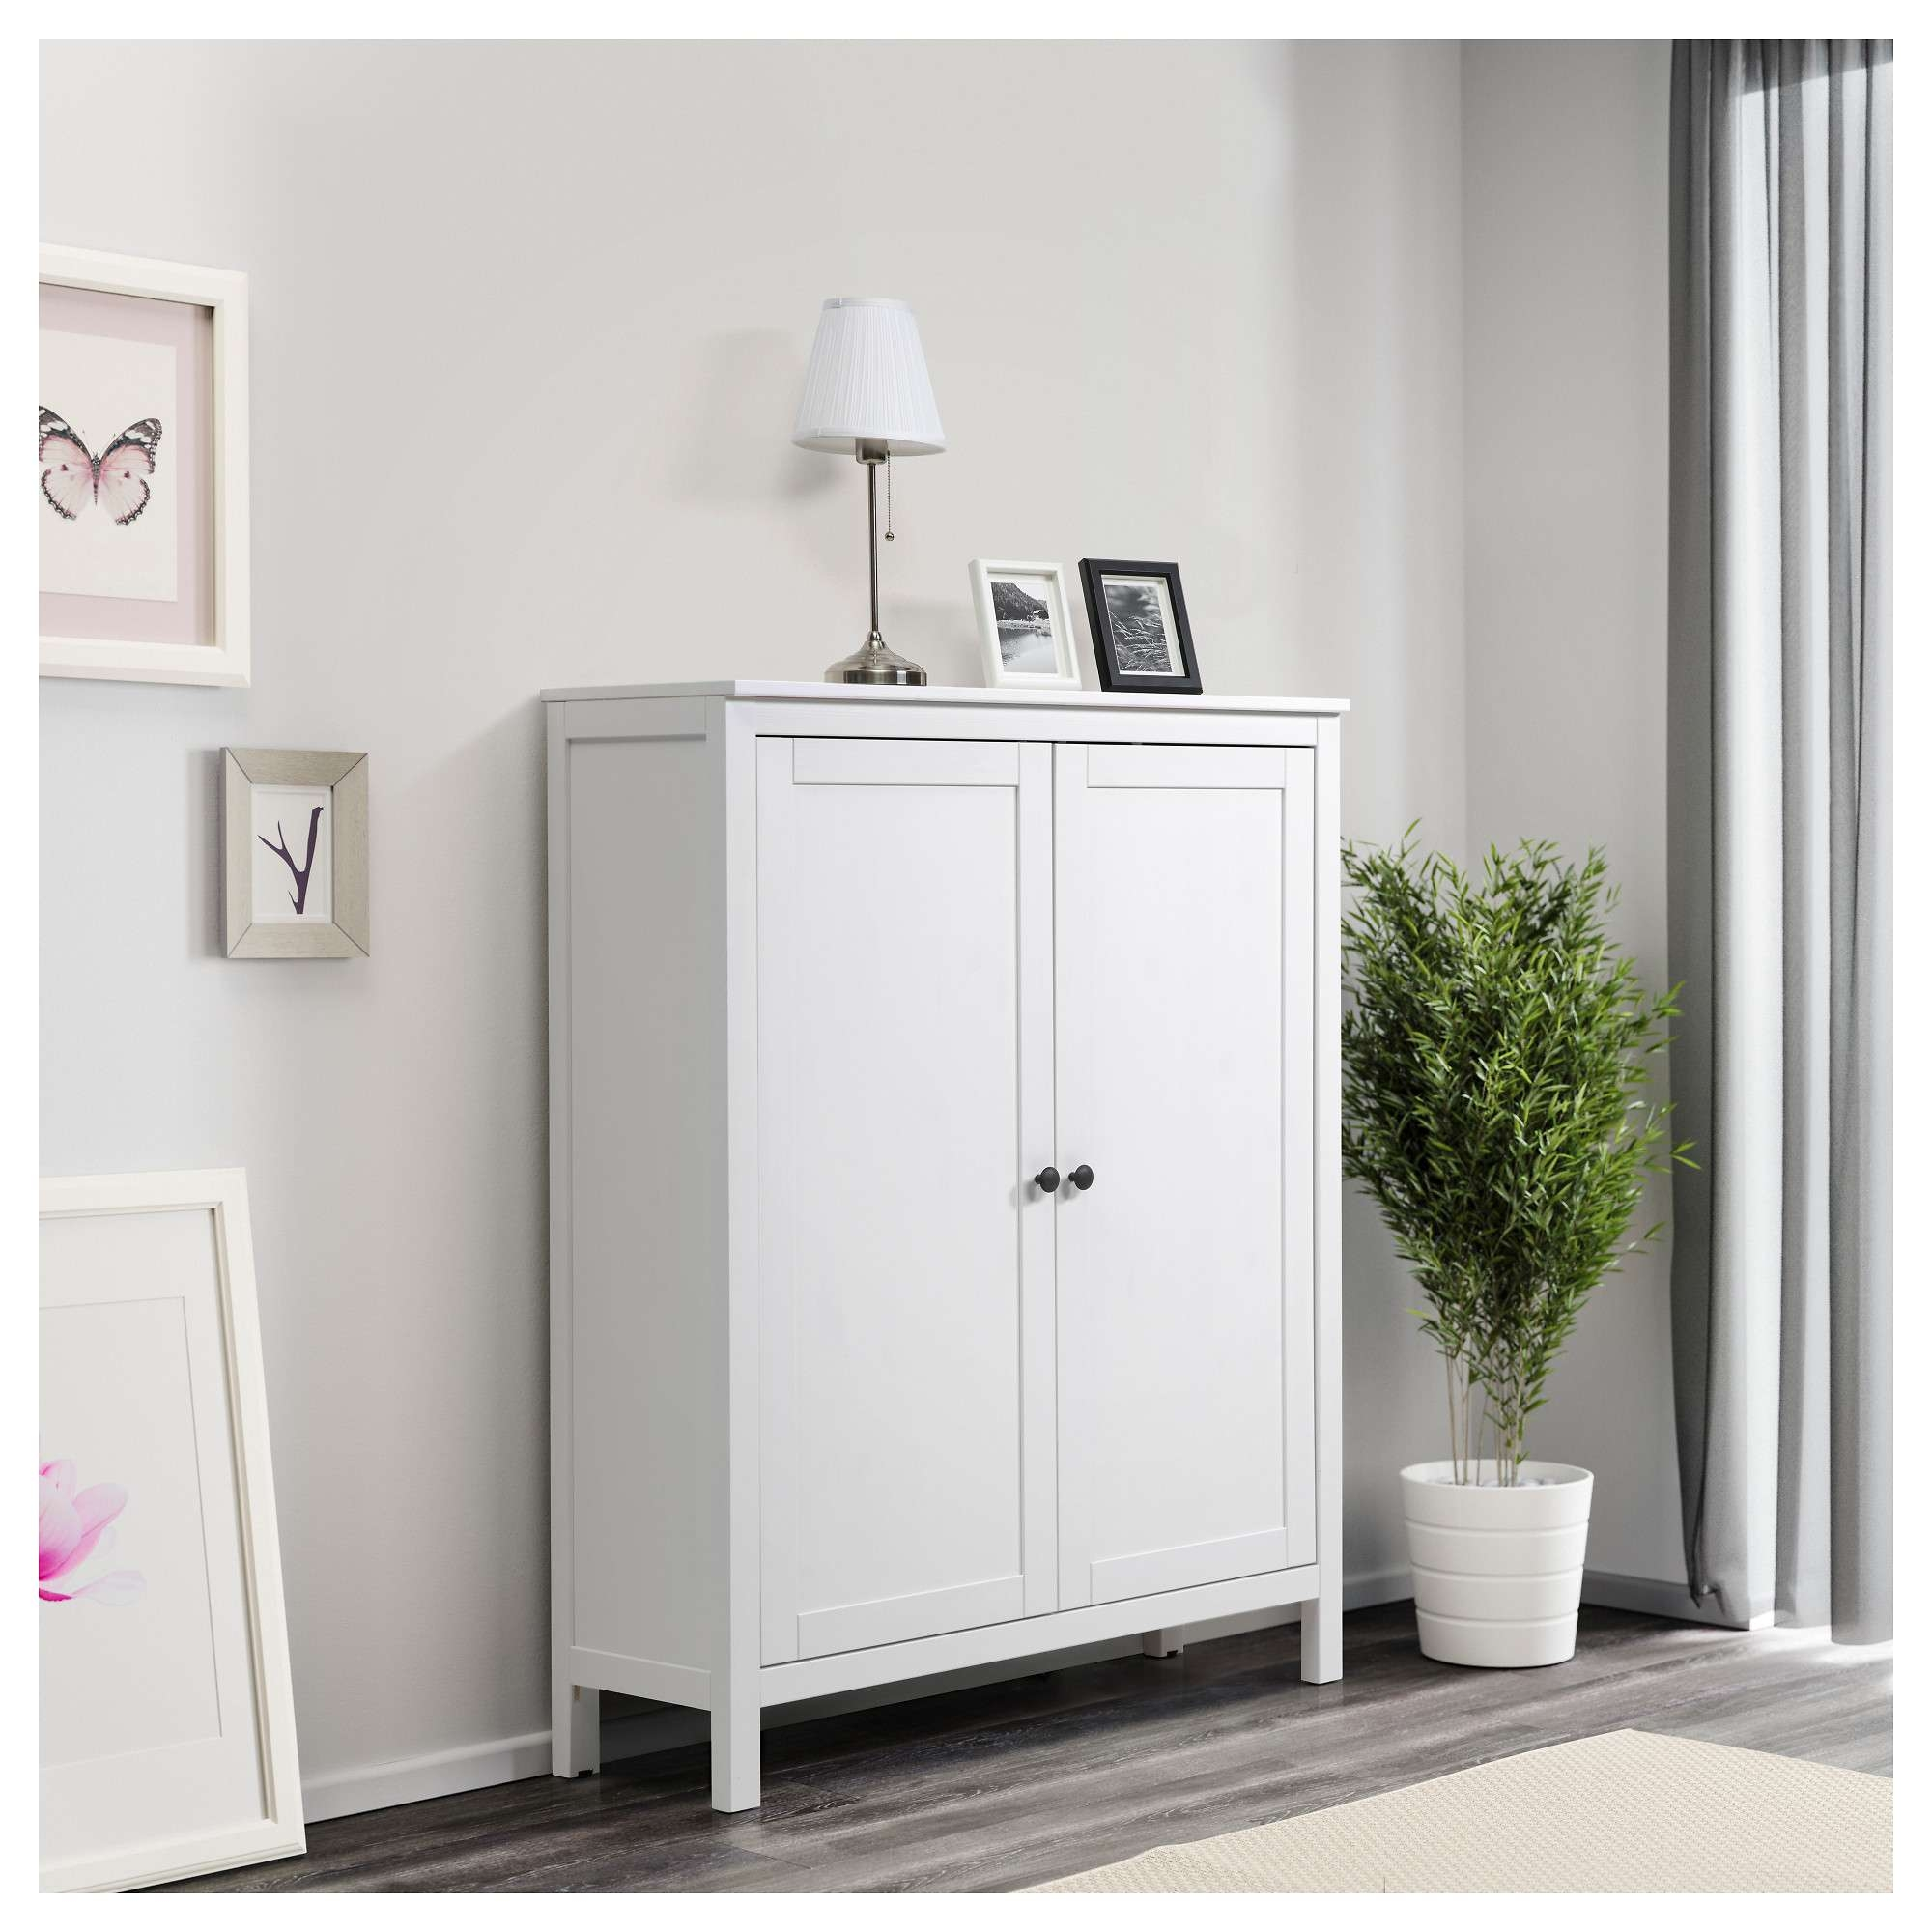 Hemnes Cabinet With 2 Doors White Stain 99x130 Cm – Ikea For Ikea Hemnes Sideboards (View 20 of 20)